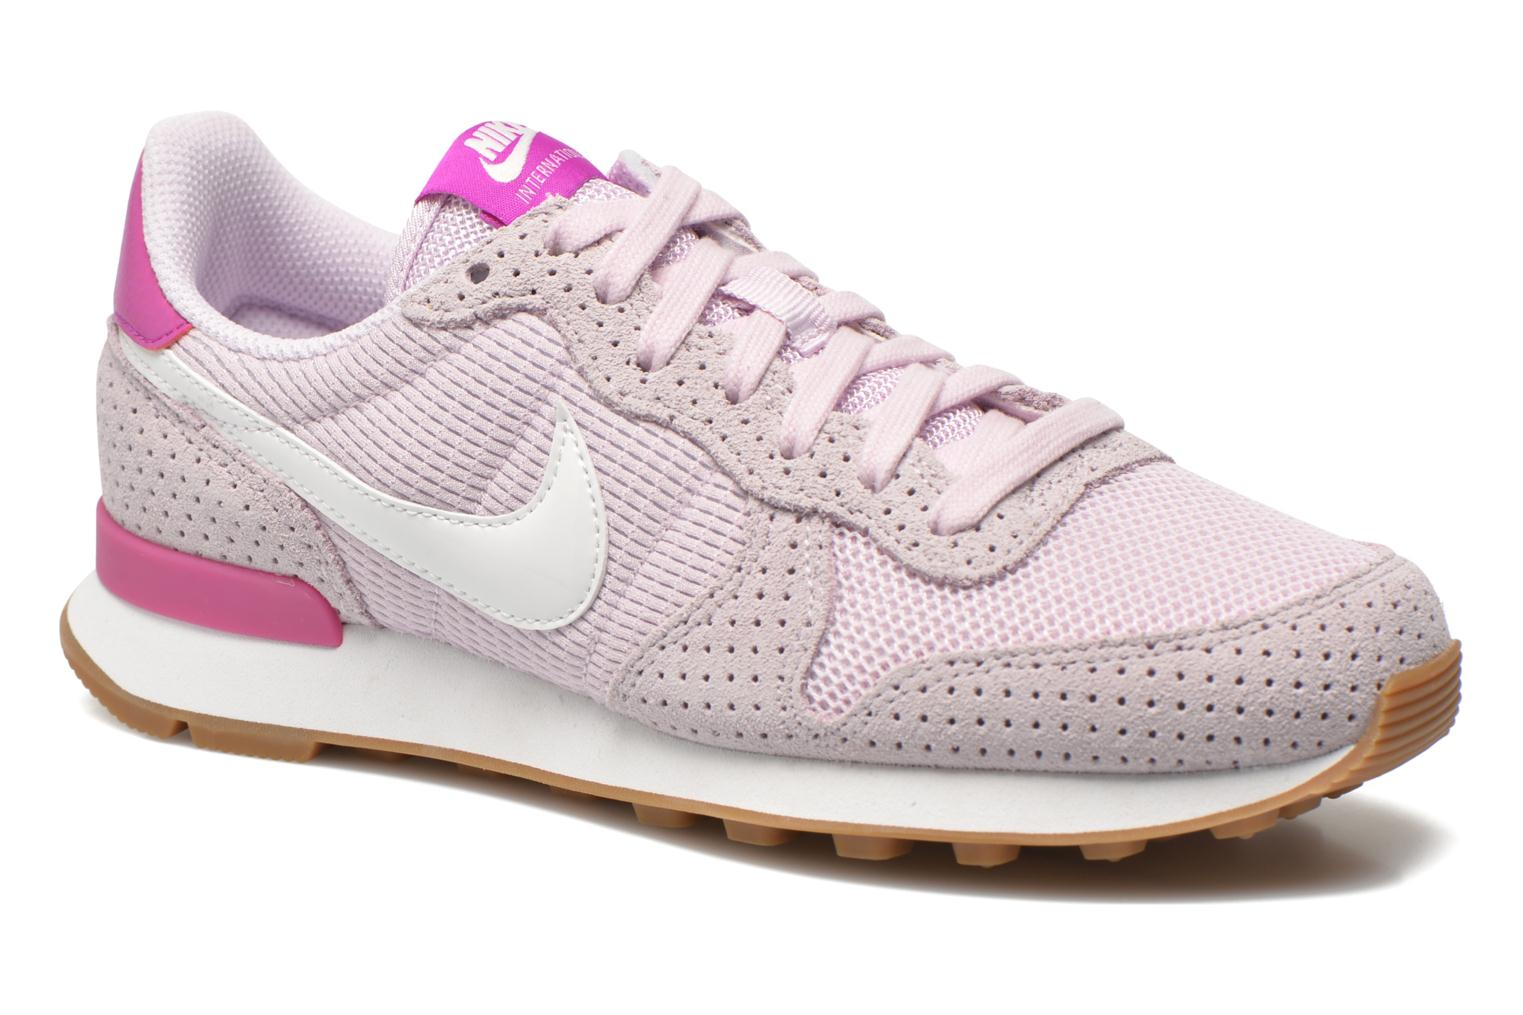 Wmns Internationalist Blchd Llc/Smmt Wht-Gm Md Brwn